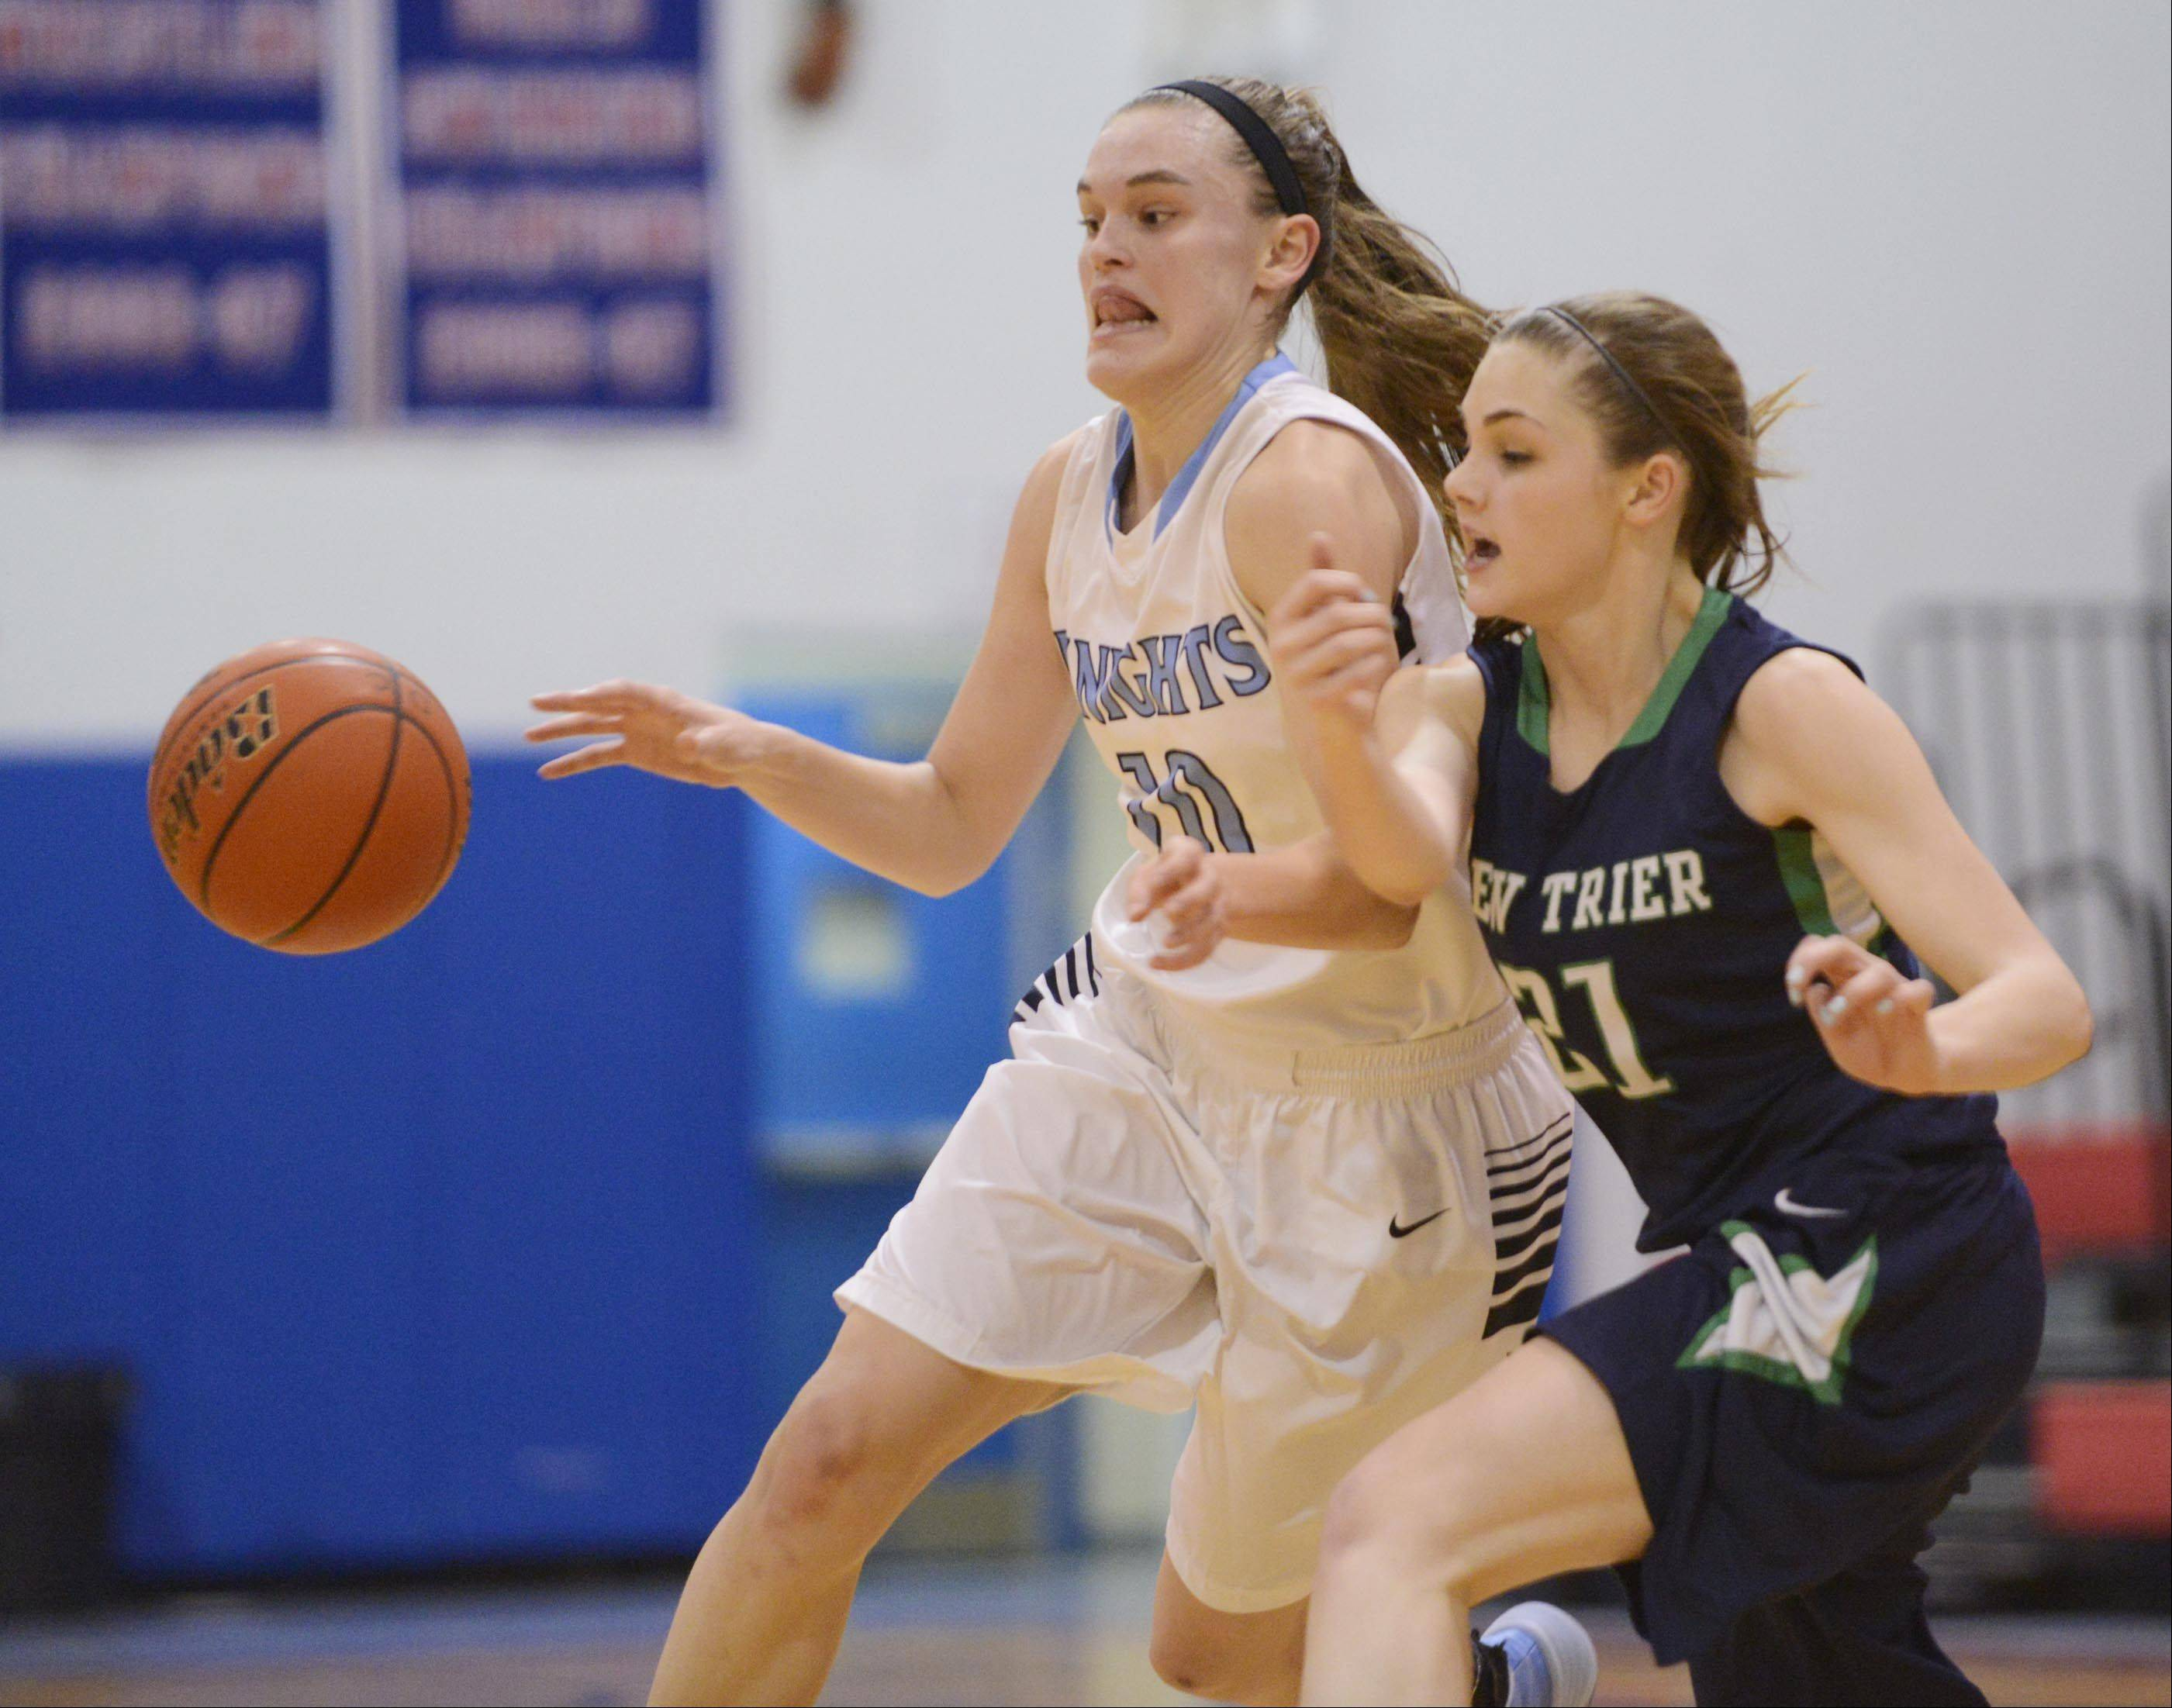 New Trier's Isabella Bosco knocks the ball from Prospect's Taylor Will Monday in the championship game of the 31st Annual Charger Classic at Dundee-Crown on Monday.